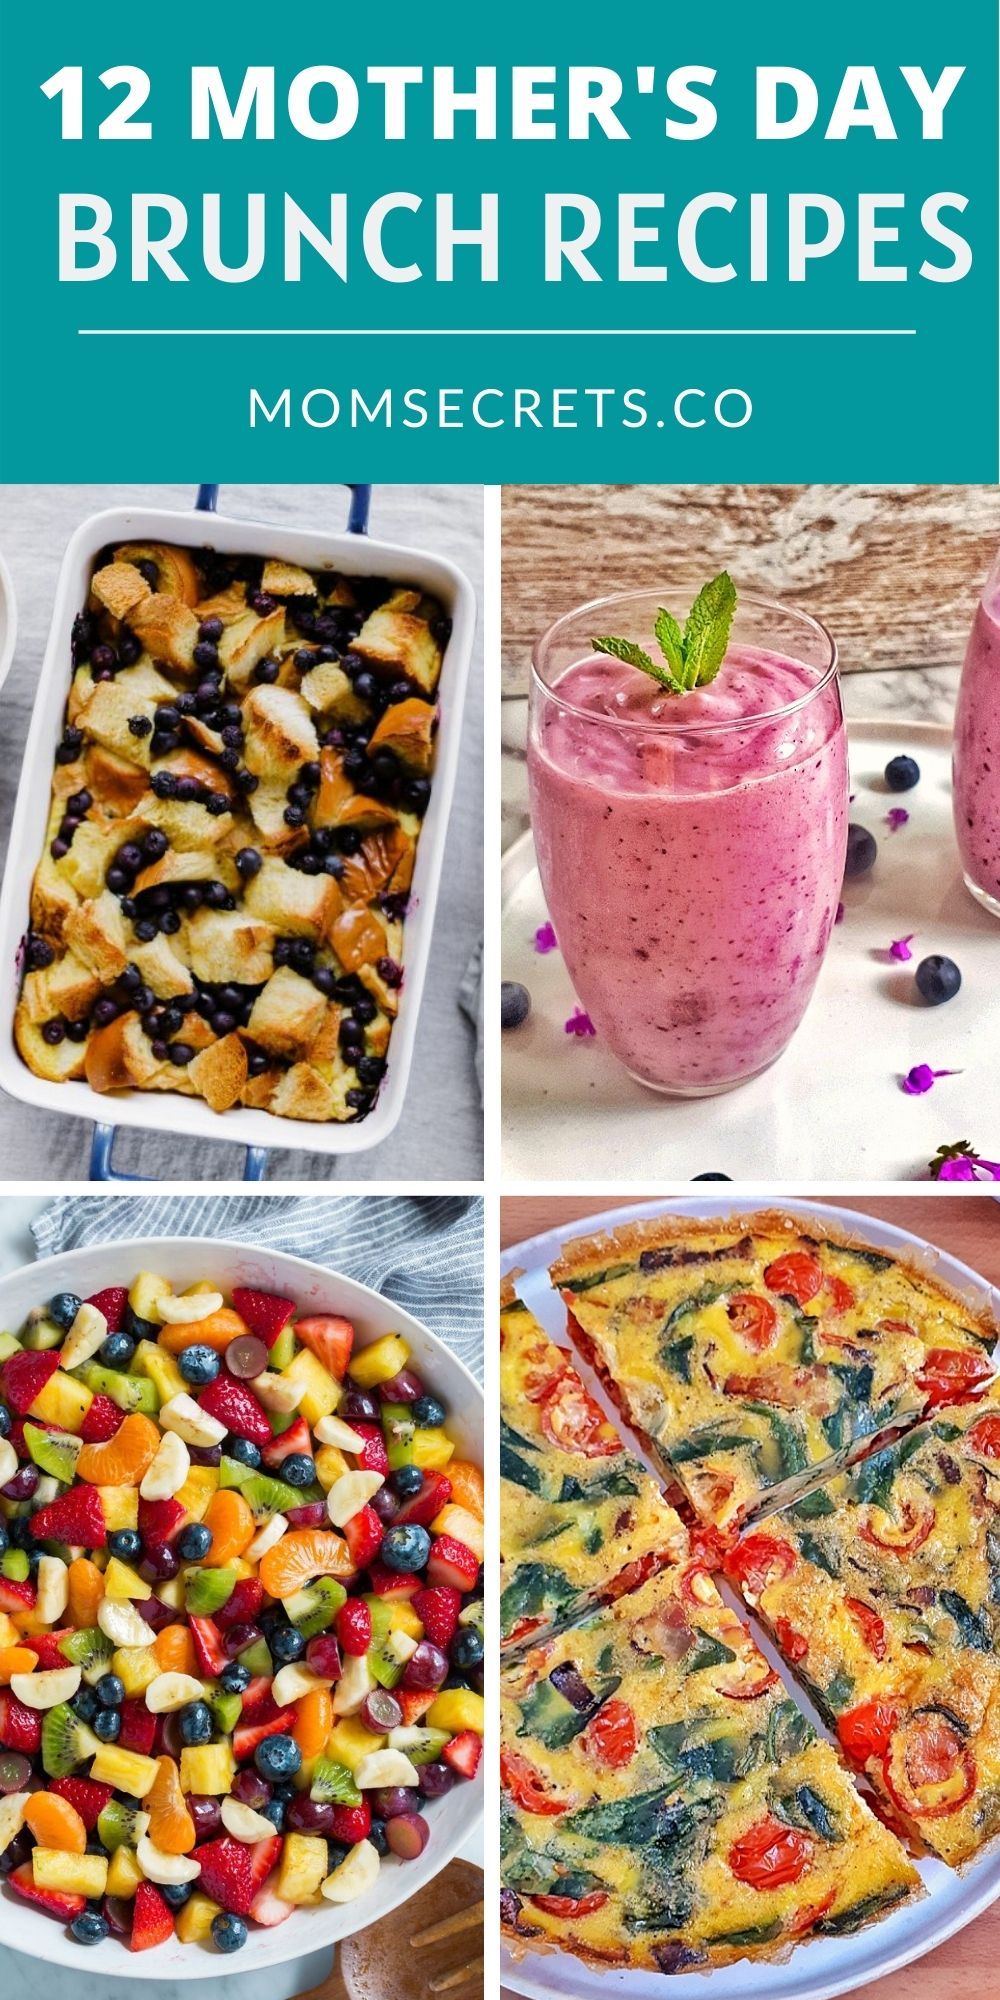 12 Mother's Day Recipes Ideas is a collection of delicious brunch recipes to make for your mom on her special day! #mothersday #brunch #breakfast